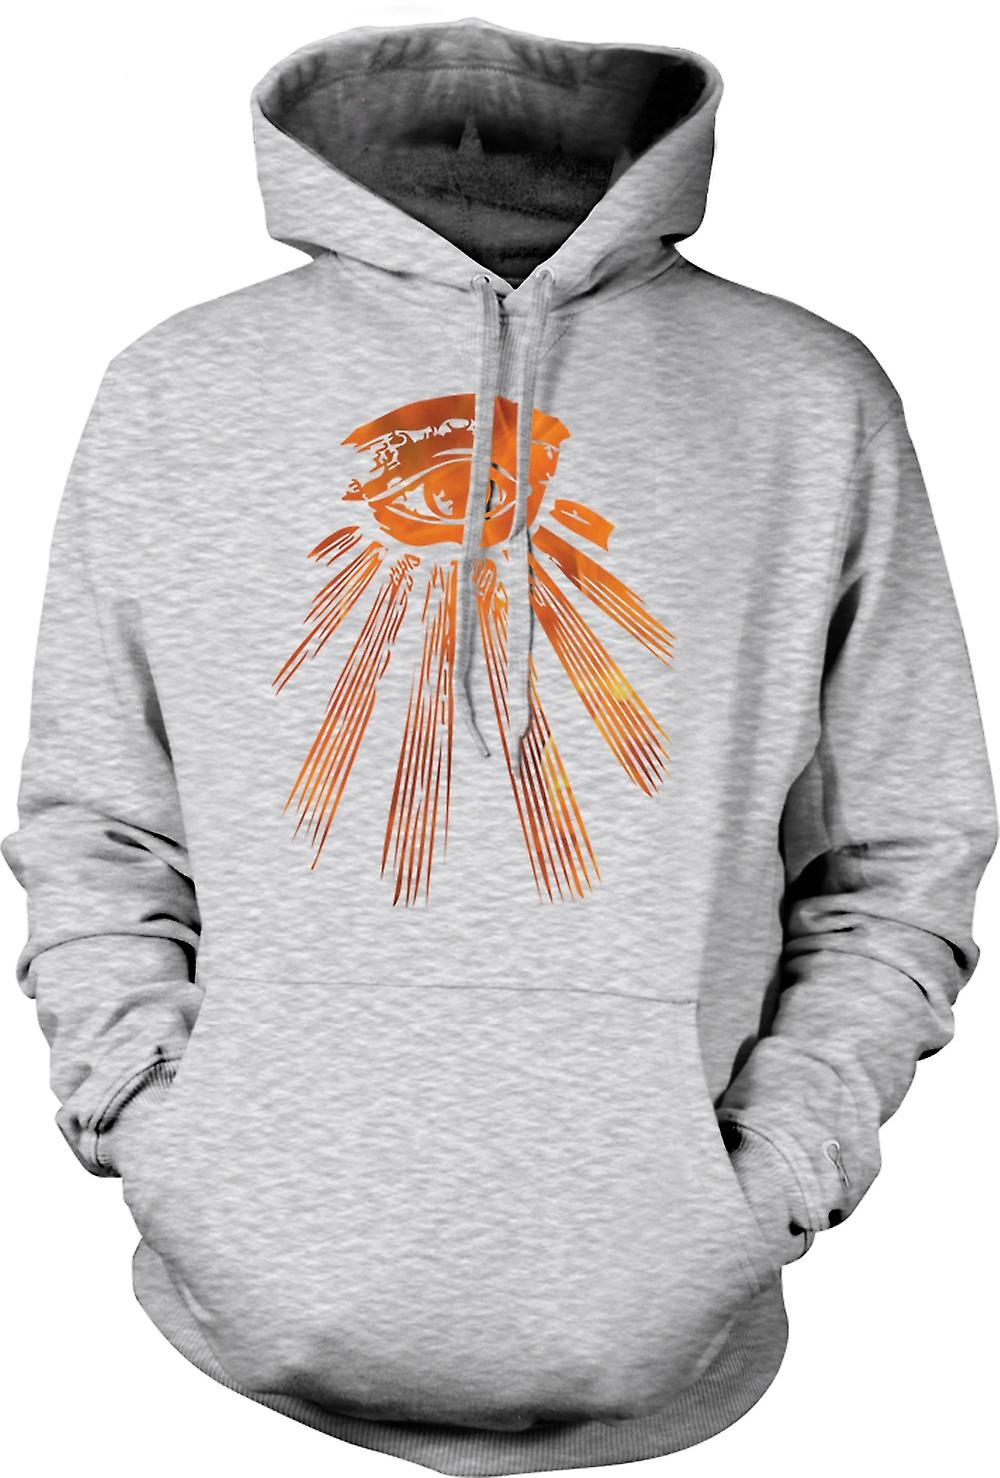 Mens Hoodie - Illuminati All Seeing Eye